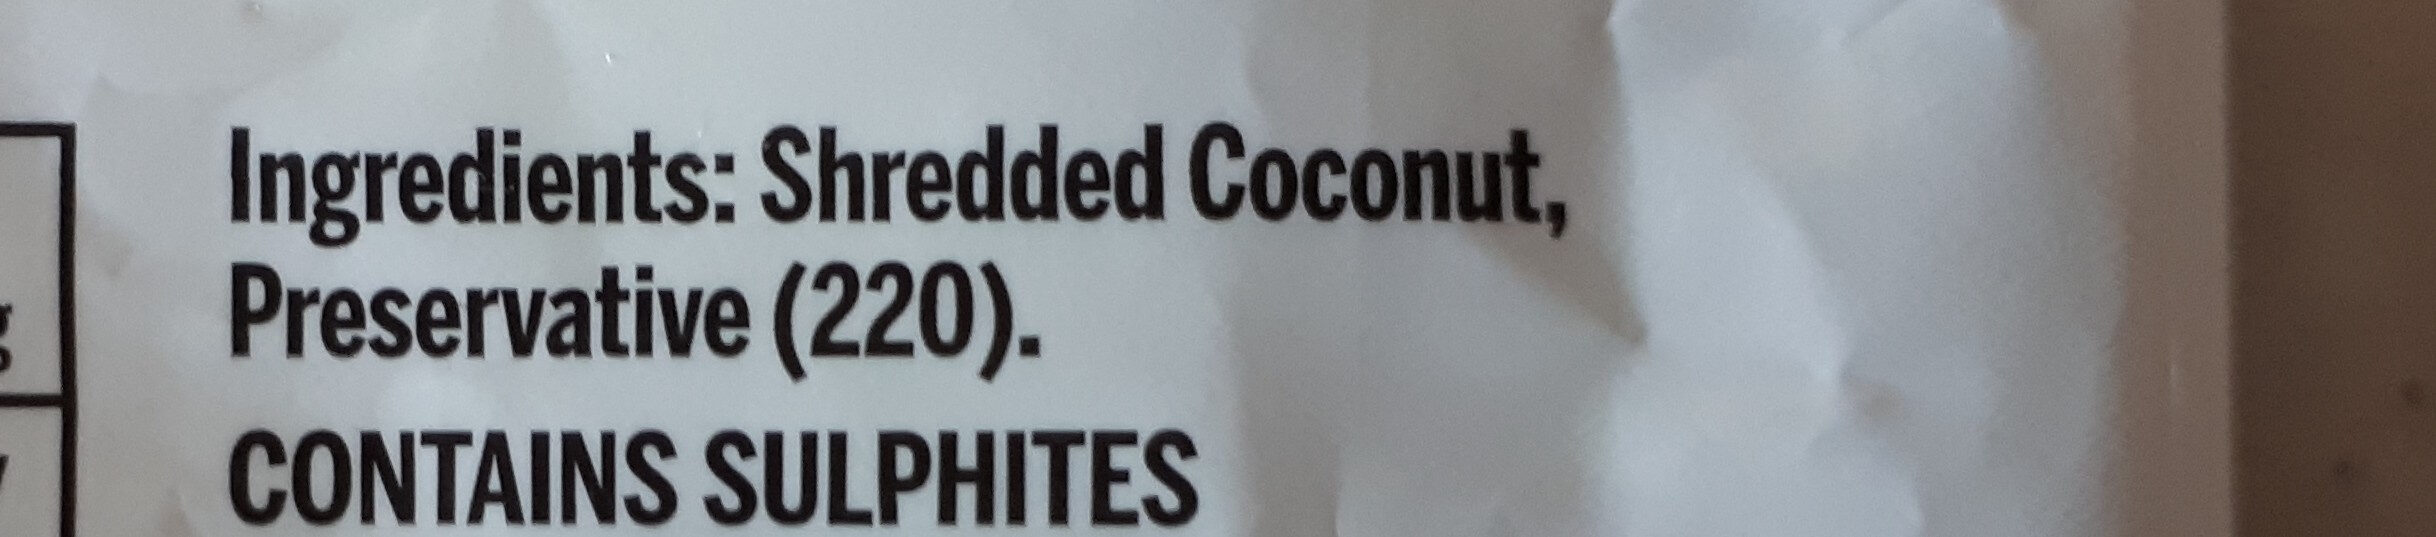 Shredded Coconut - Ingredients